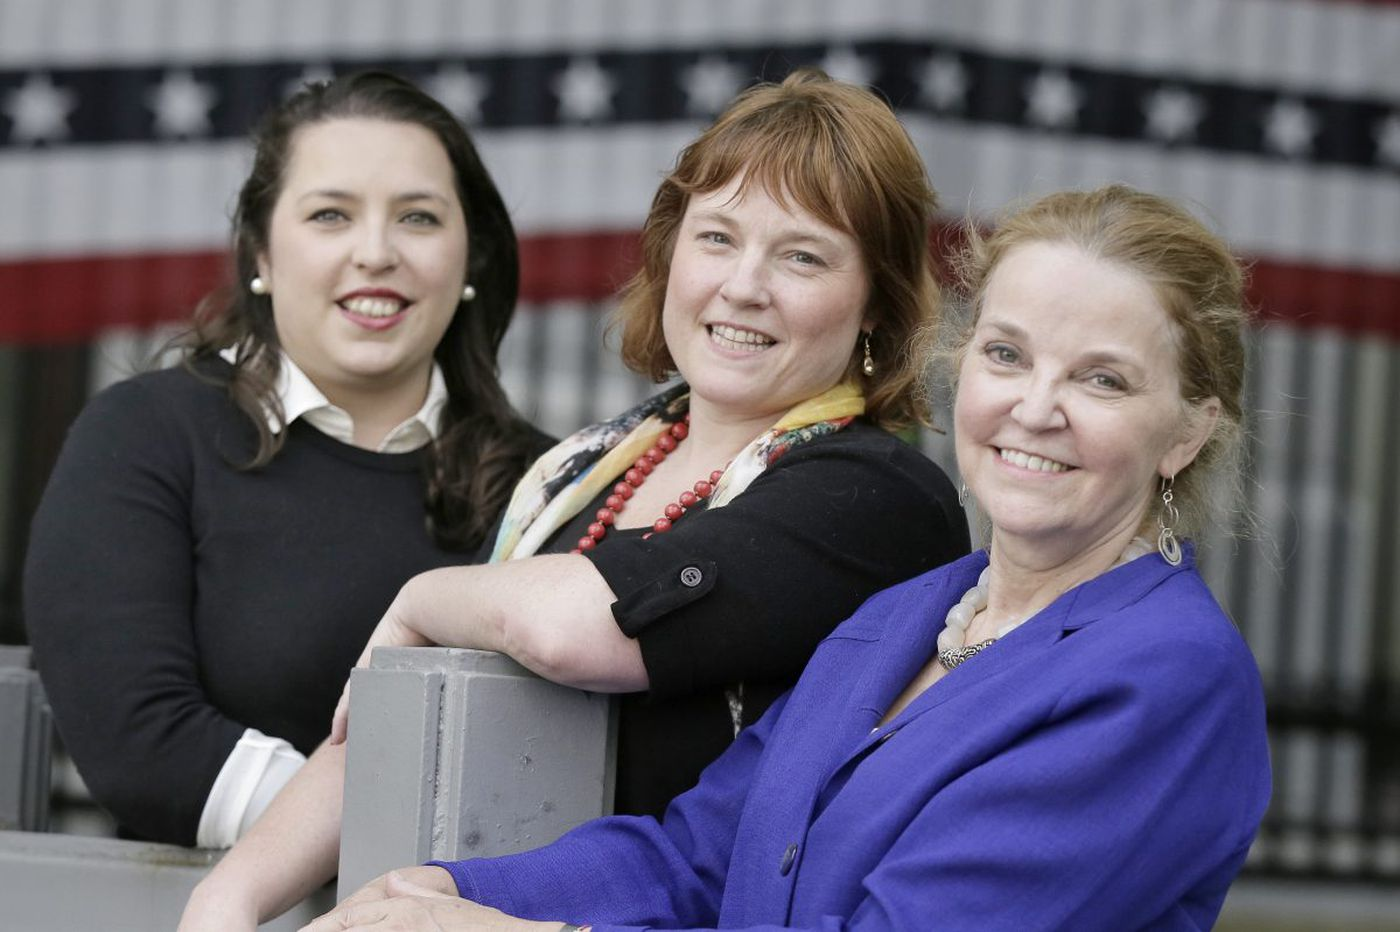 Pa. women are gunning for state House, Senate seats this year. It's huge - and about time. | Maria Panaritis